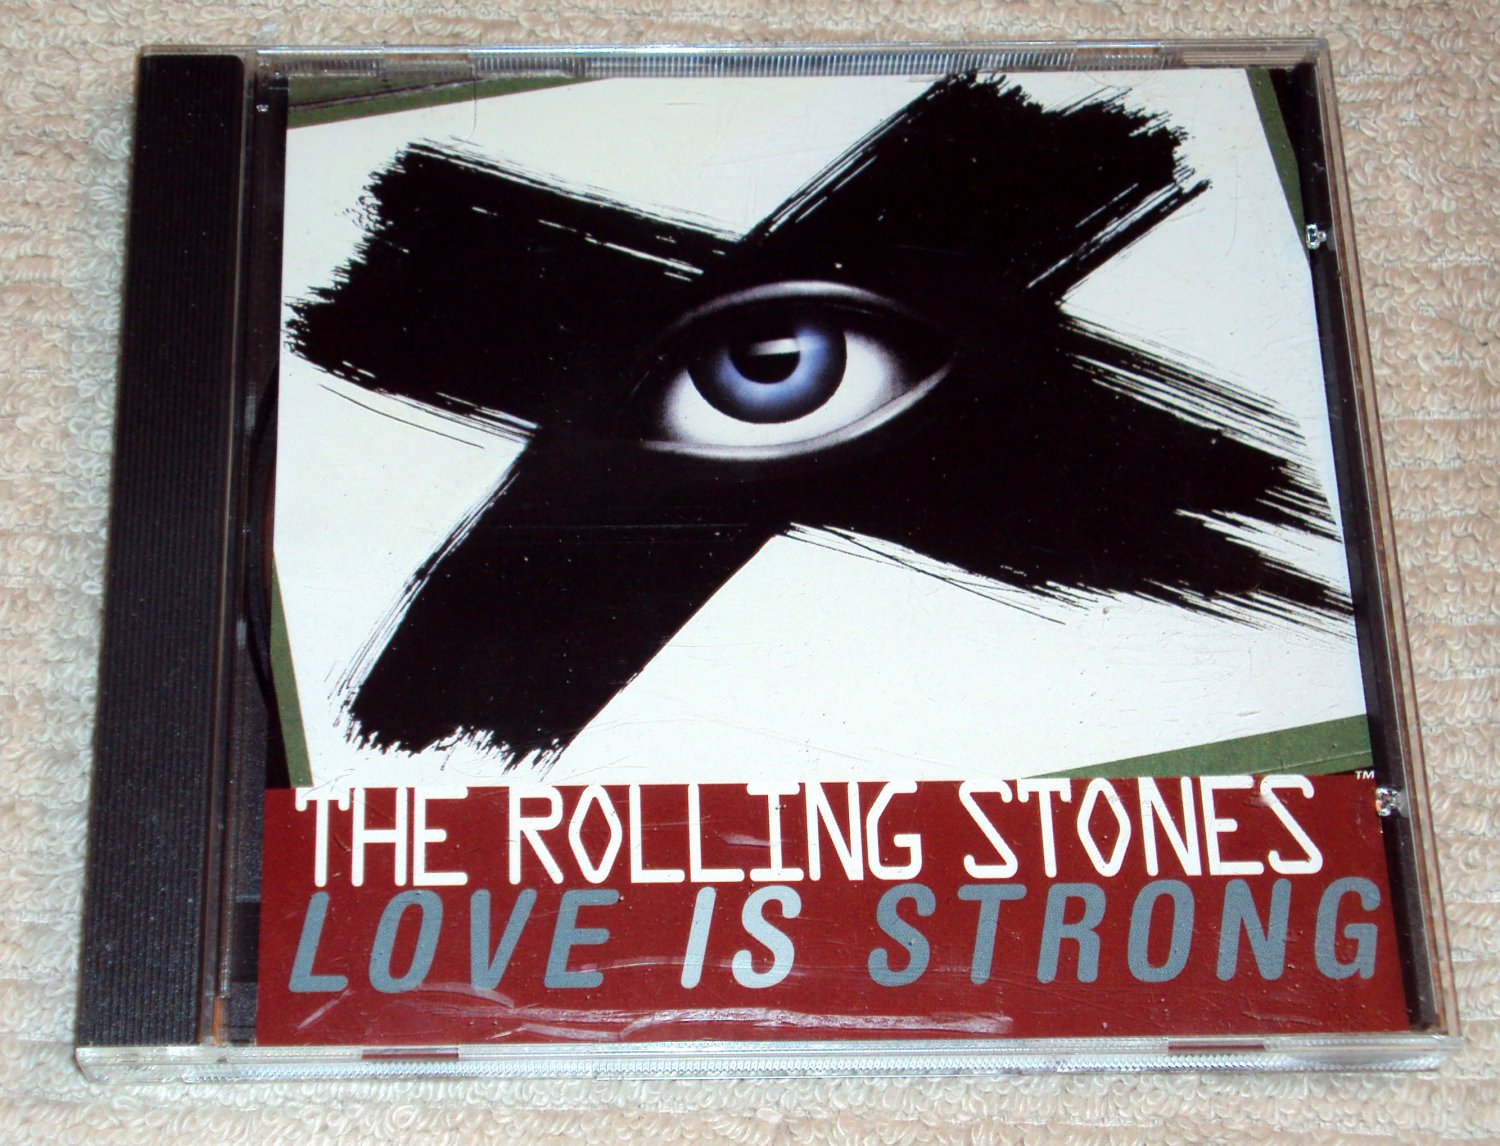 Rolling Stones � Love Is Strong (2 Versions including Bob Clearmountain remix) US PROMO CD SINGLE